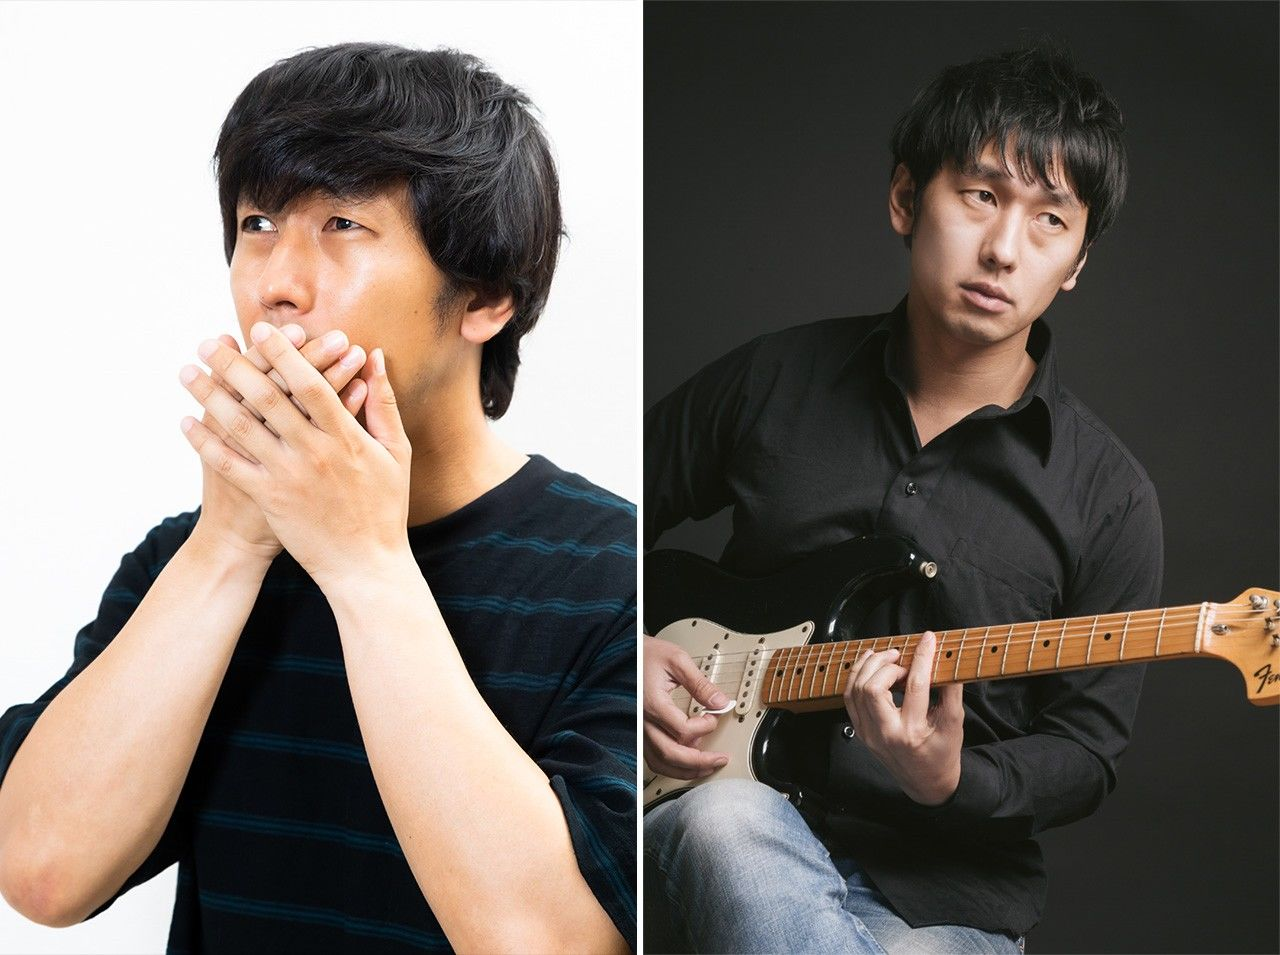 Ōkawa with hands over mouth (left) and posing with a guitar.